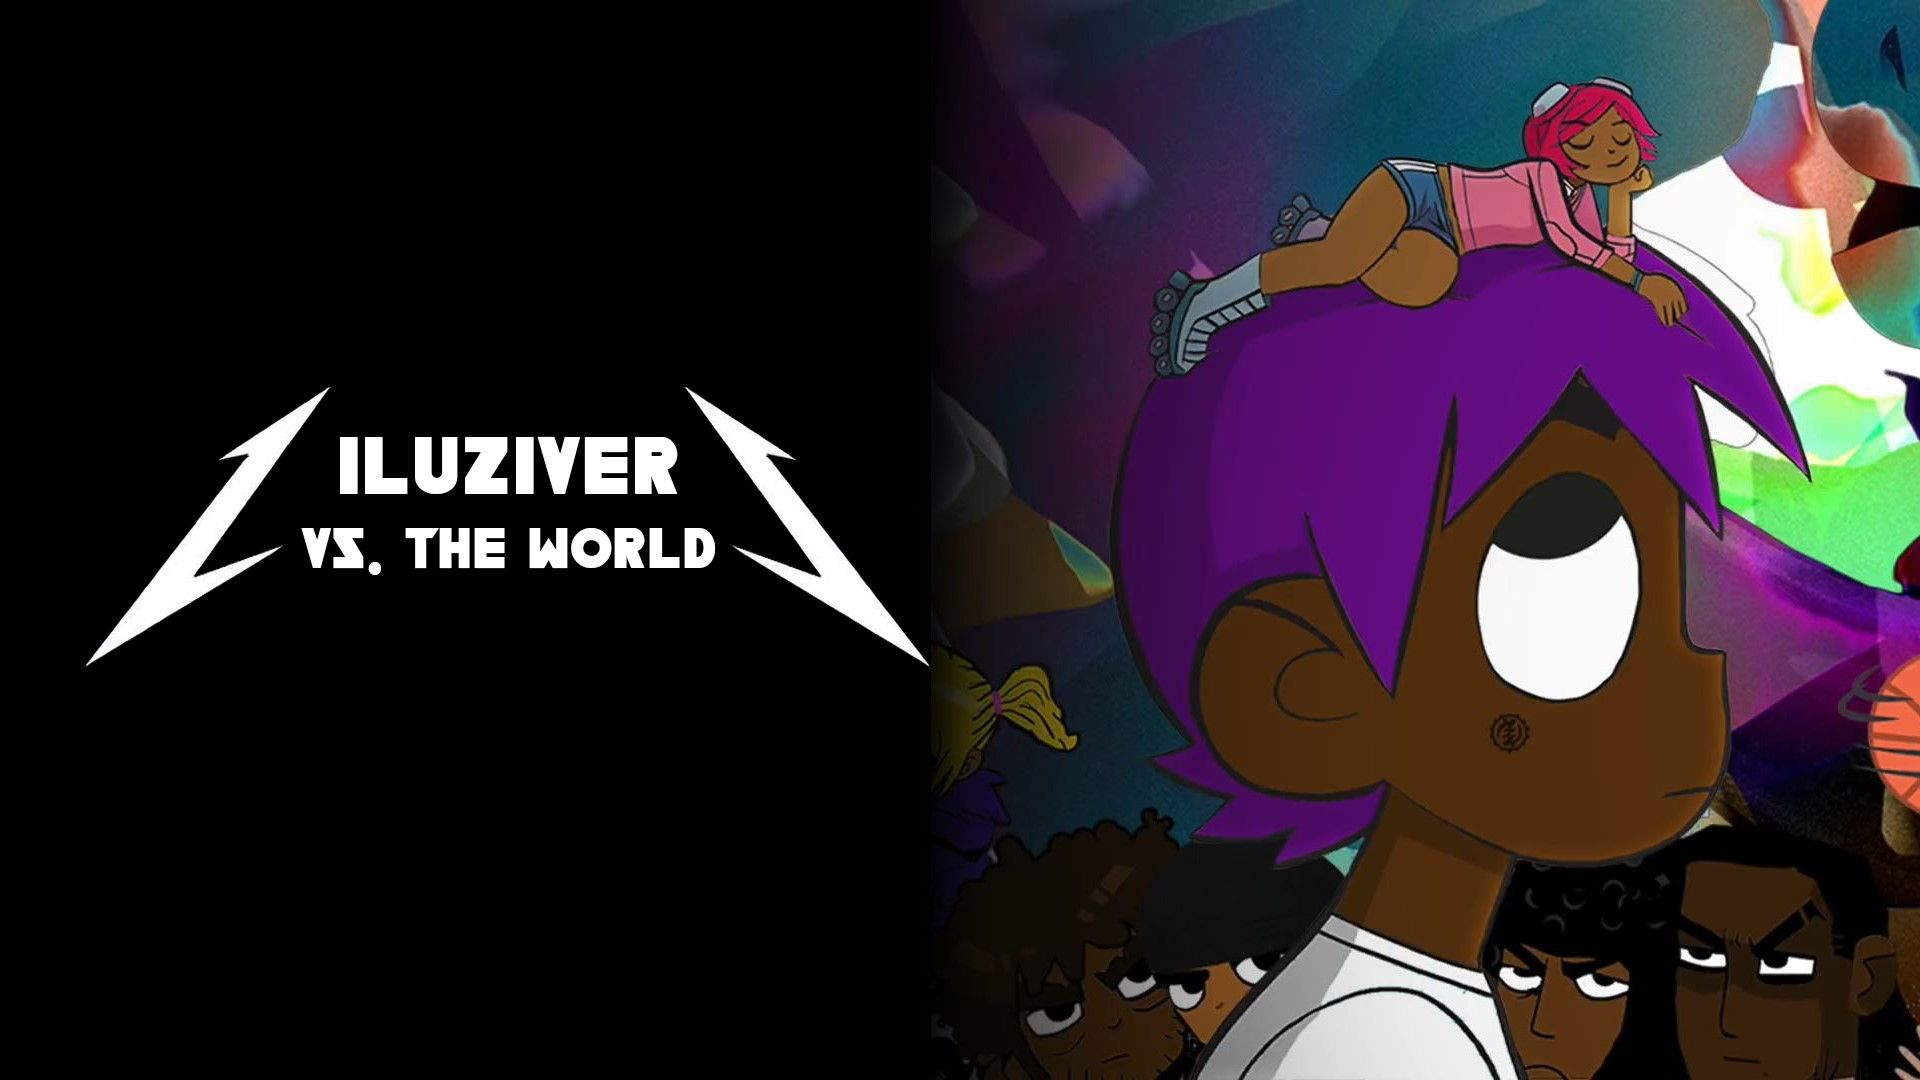 Lil Uzi Vert Desktop Wallpapers Wallpaper Cave A collection of the top 36 lil uzi vert wallpapers and backgrounds available for download for free. lil uzi vert desktop wallpapers